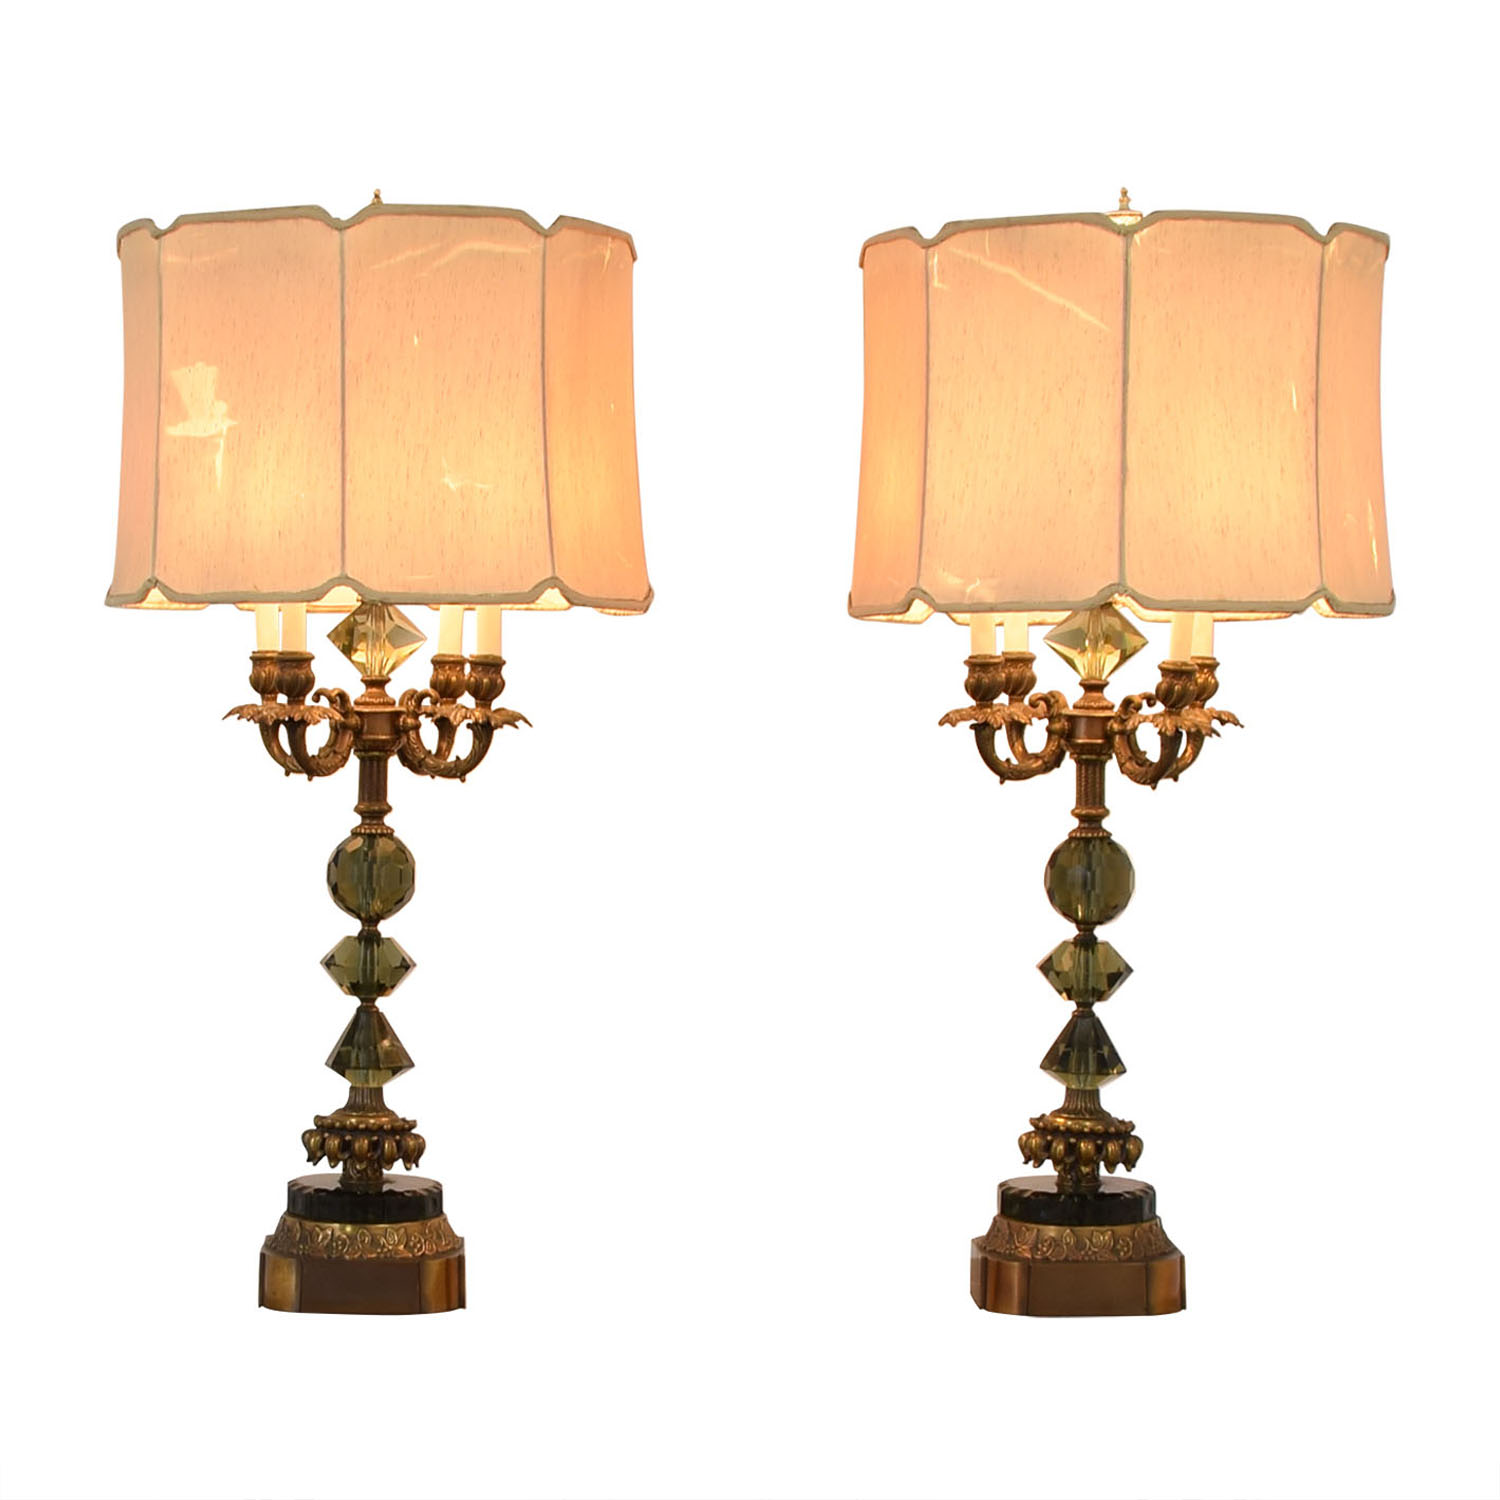 Chandelier Table Lamps Lamps